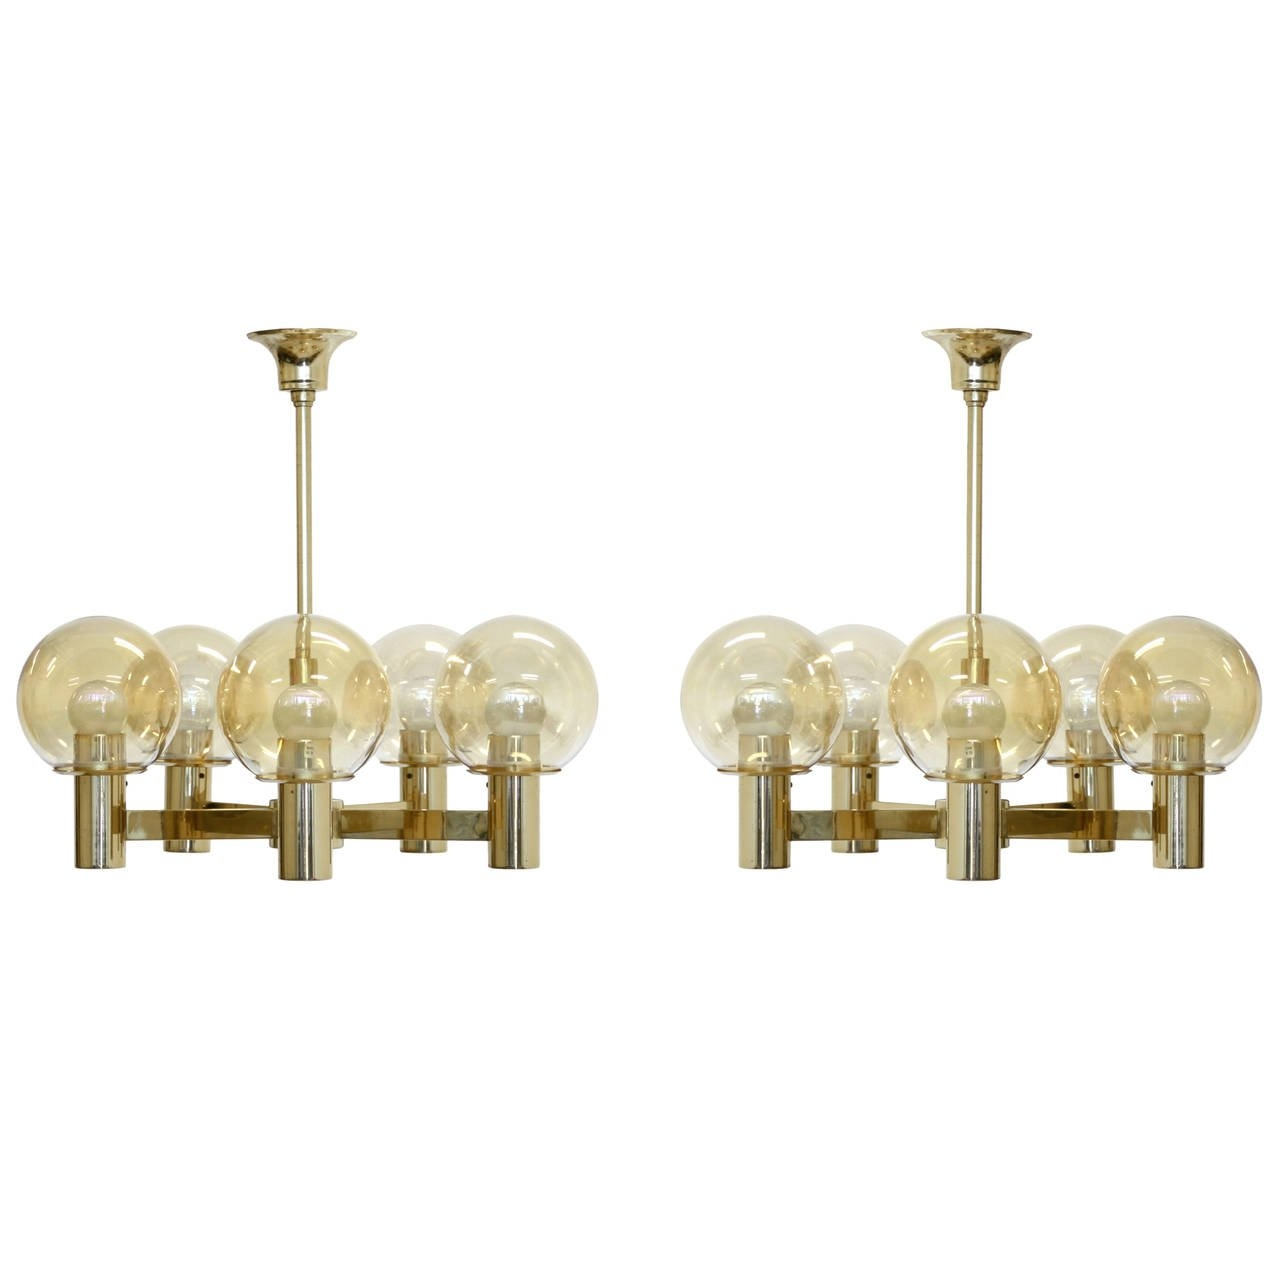 Pair Of Brass Chandeliers Hvik Lys At 1stdibs Pertaining To Brass Chandeliers (Image 10 of 15)